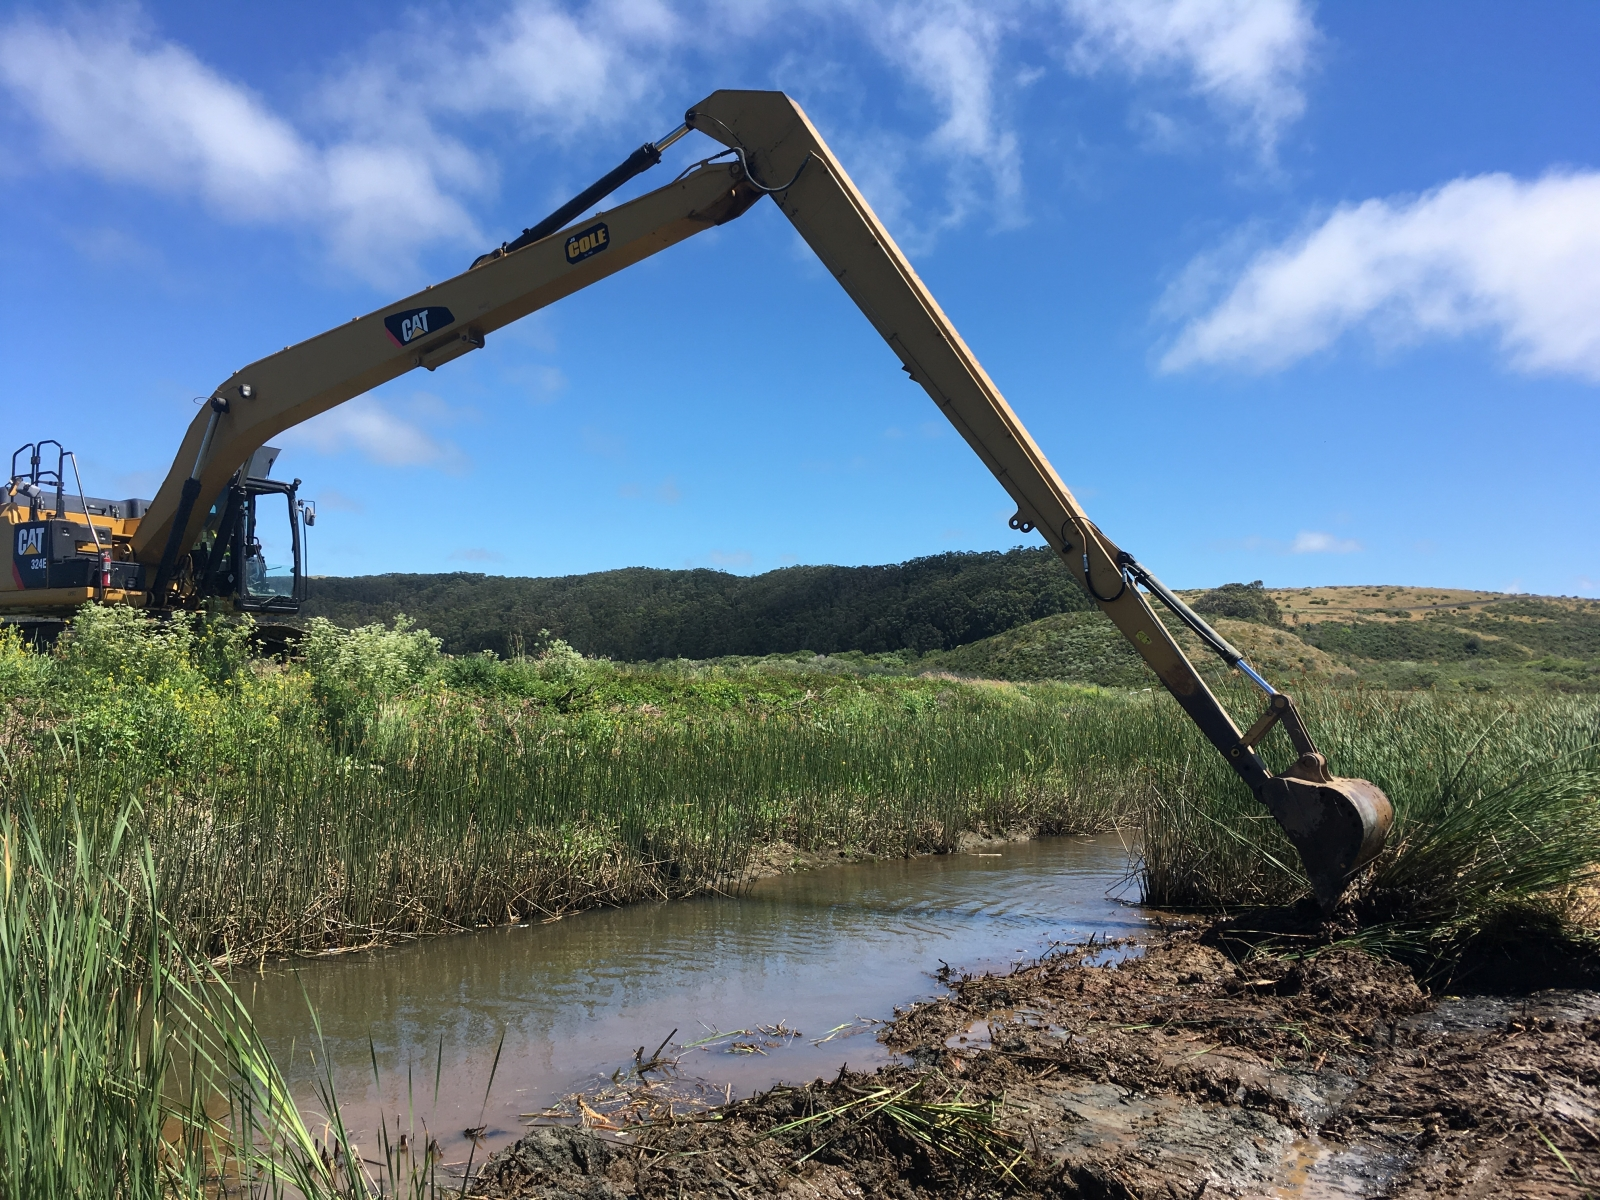 Long-reach excavator removing vegetation, June 2019.